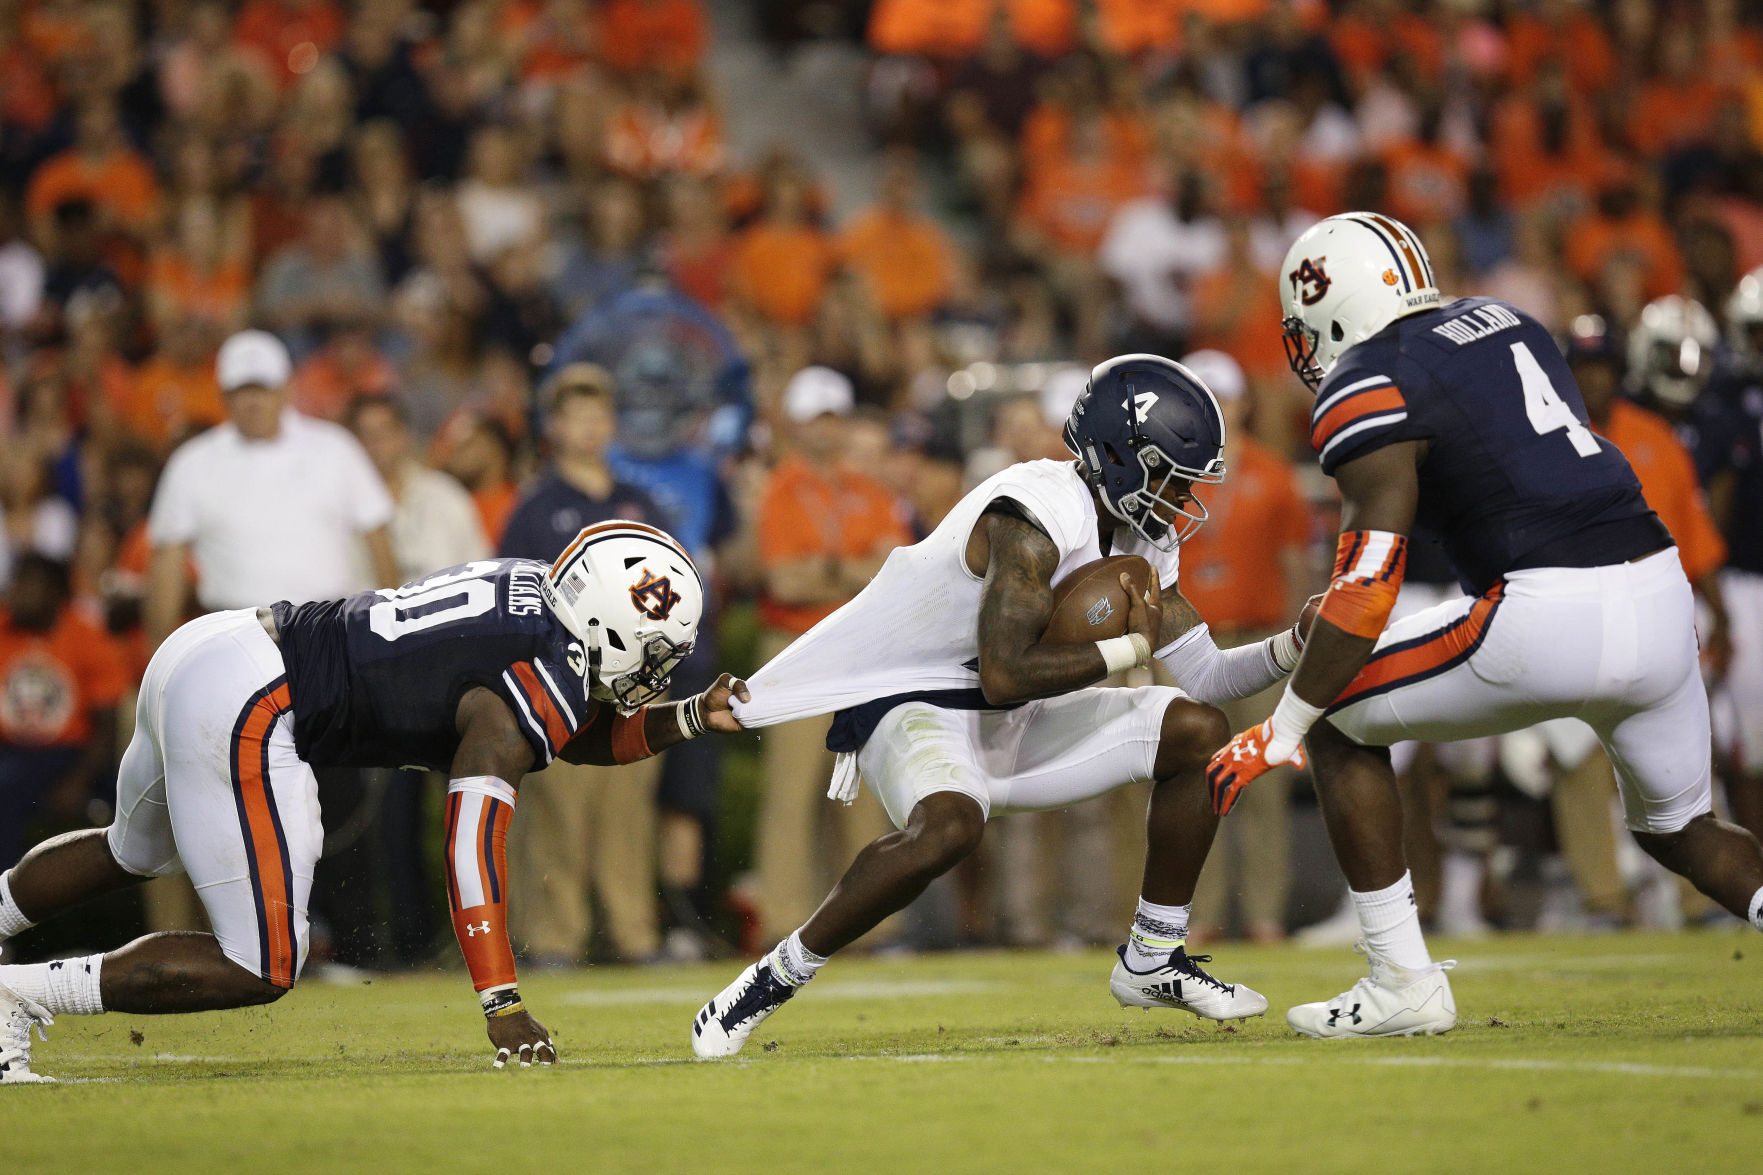 Problem solving: Unknowns loom large in Clemson-Auburn matchup